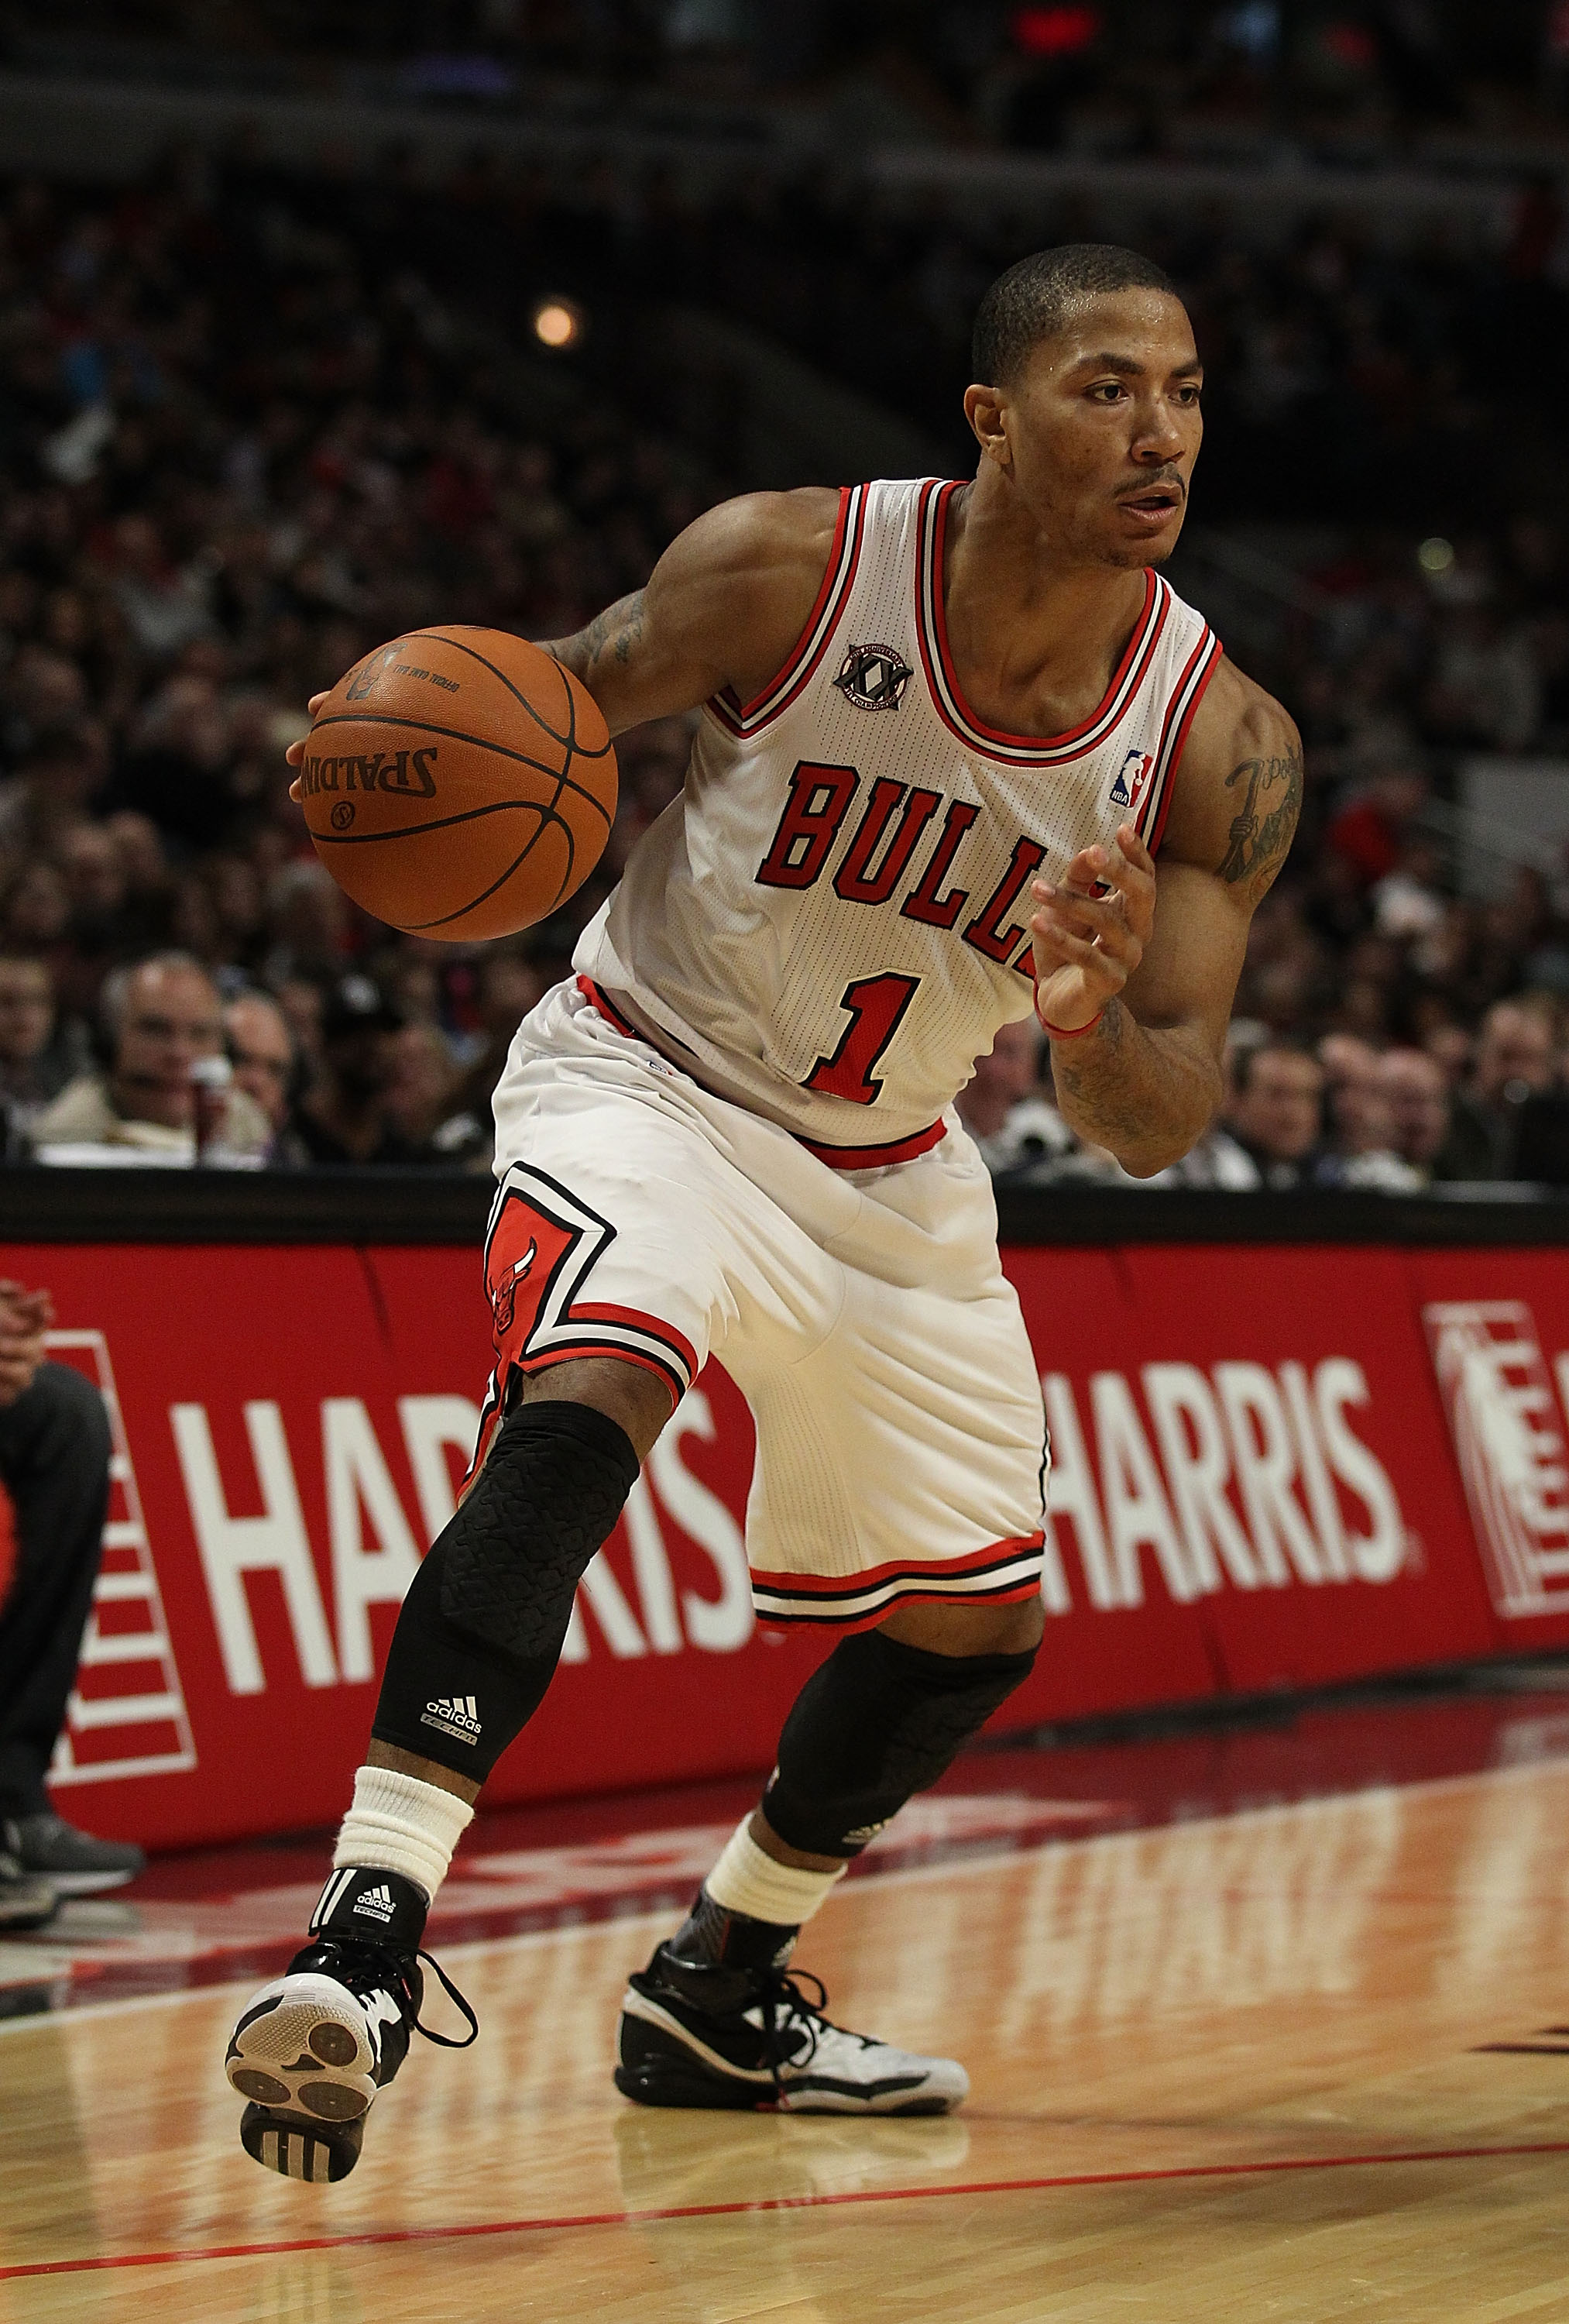 CHICAGO, IL - DECEMBER 28: Derrick Rose #1 of the Chicago Bulls looks for an open lane against the Milwaukee Bucks at the United Center on December 28, 2010 in Chicago, Illinois. The Bulls defeated the Bucks 90-77. NOTE TO USER: User expressly acknowledge